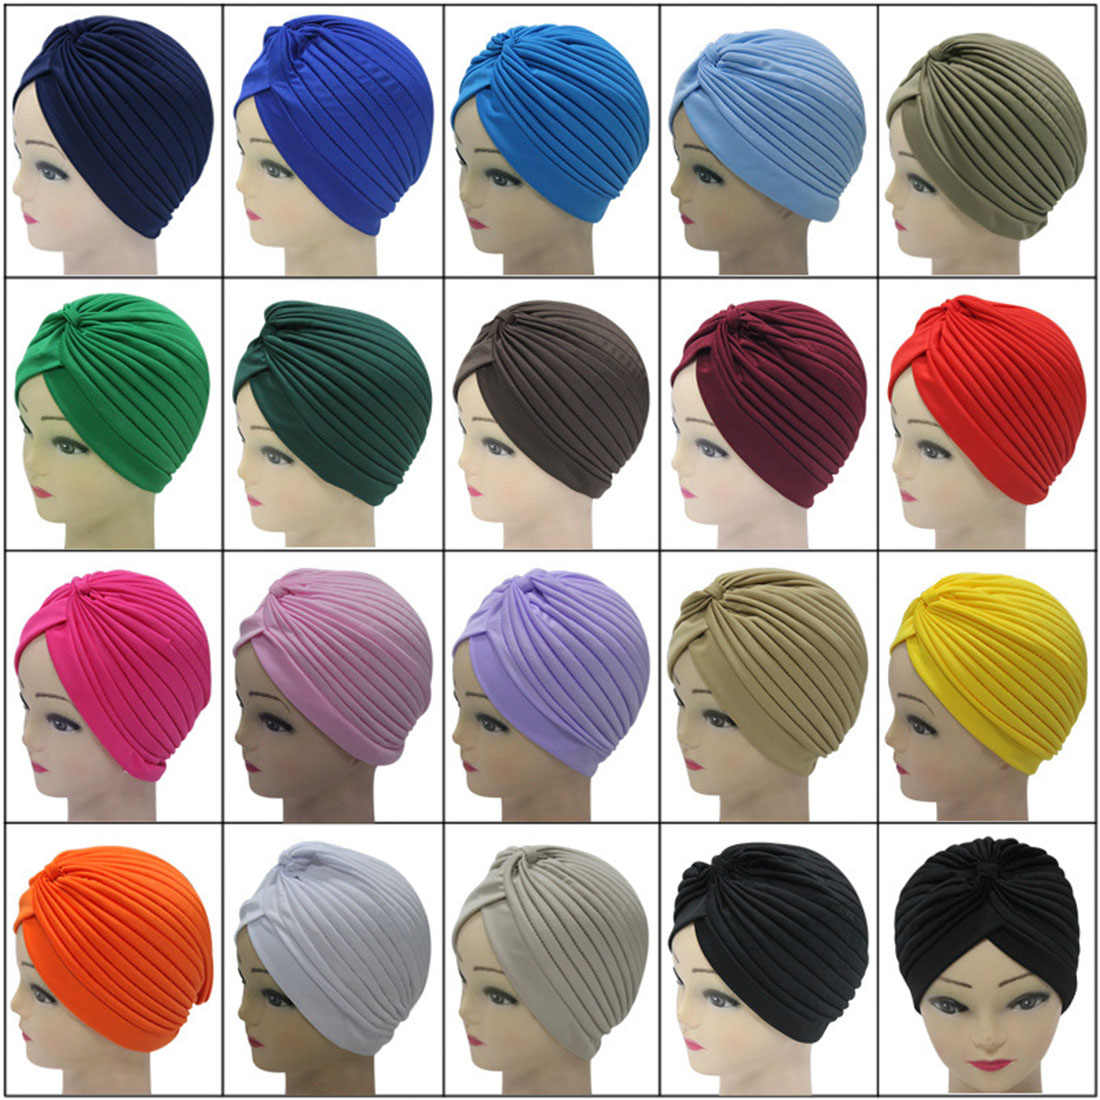 f8dc42440bd Detail Feedback Questions about Women Men Stretchy Turban Head Wrap Band  Chemo Bandana Pleated Indian Cap Skullies Beanies Prayer New Hats Ethnic 23  Color ...